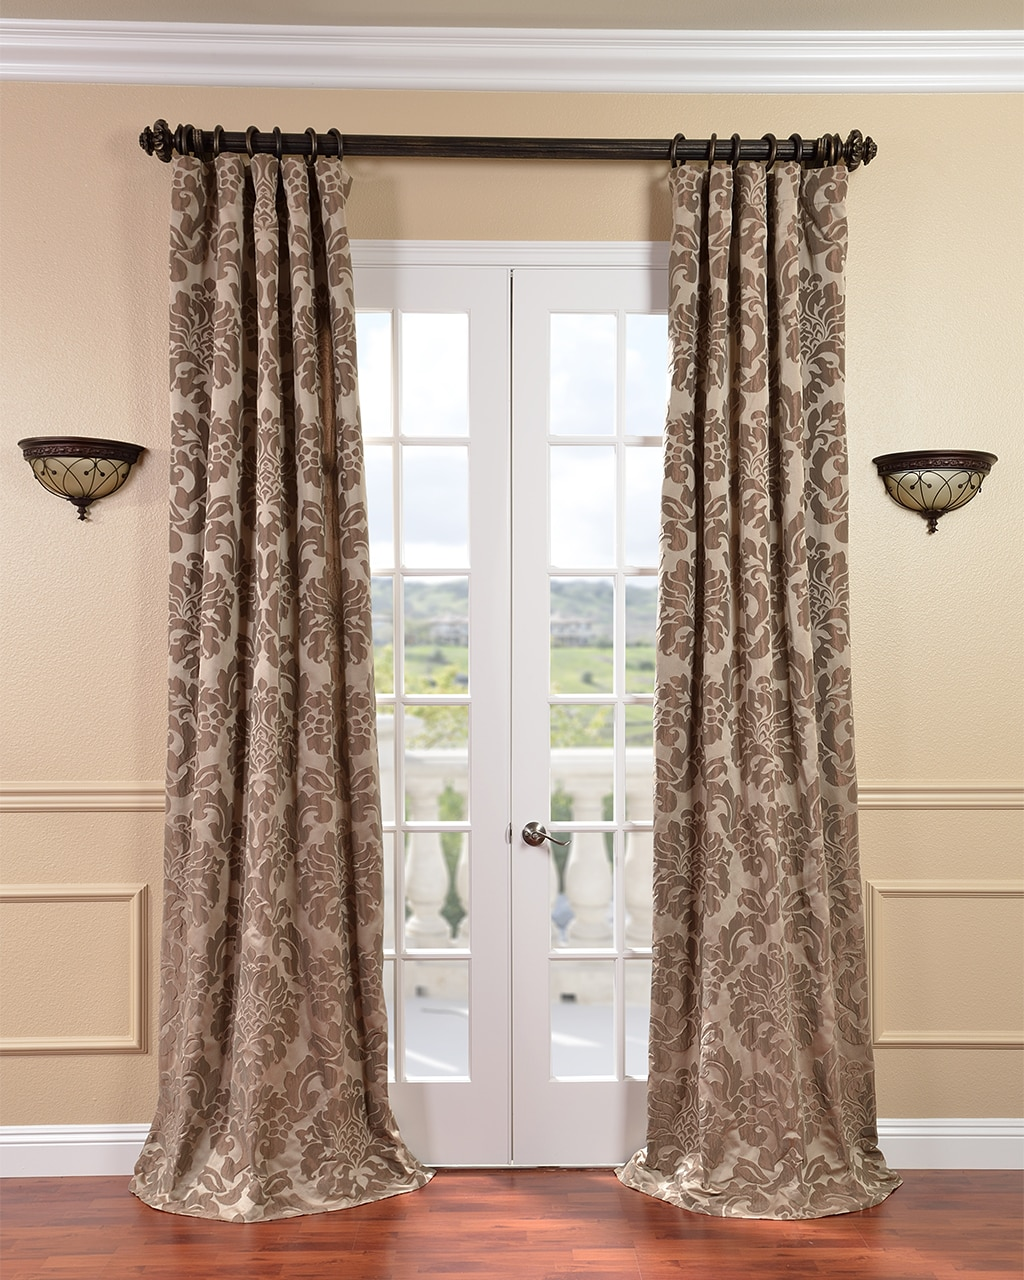 Exclusive Fabrics Astoria Faux Silk Taupe/ Mushroom Jacquard Curtains